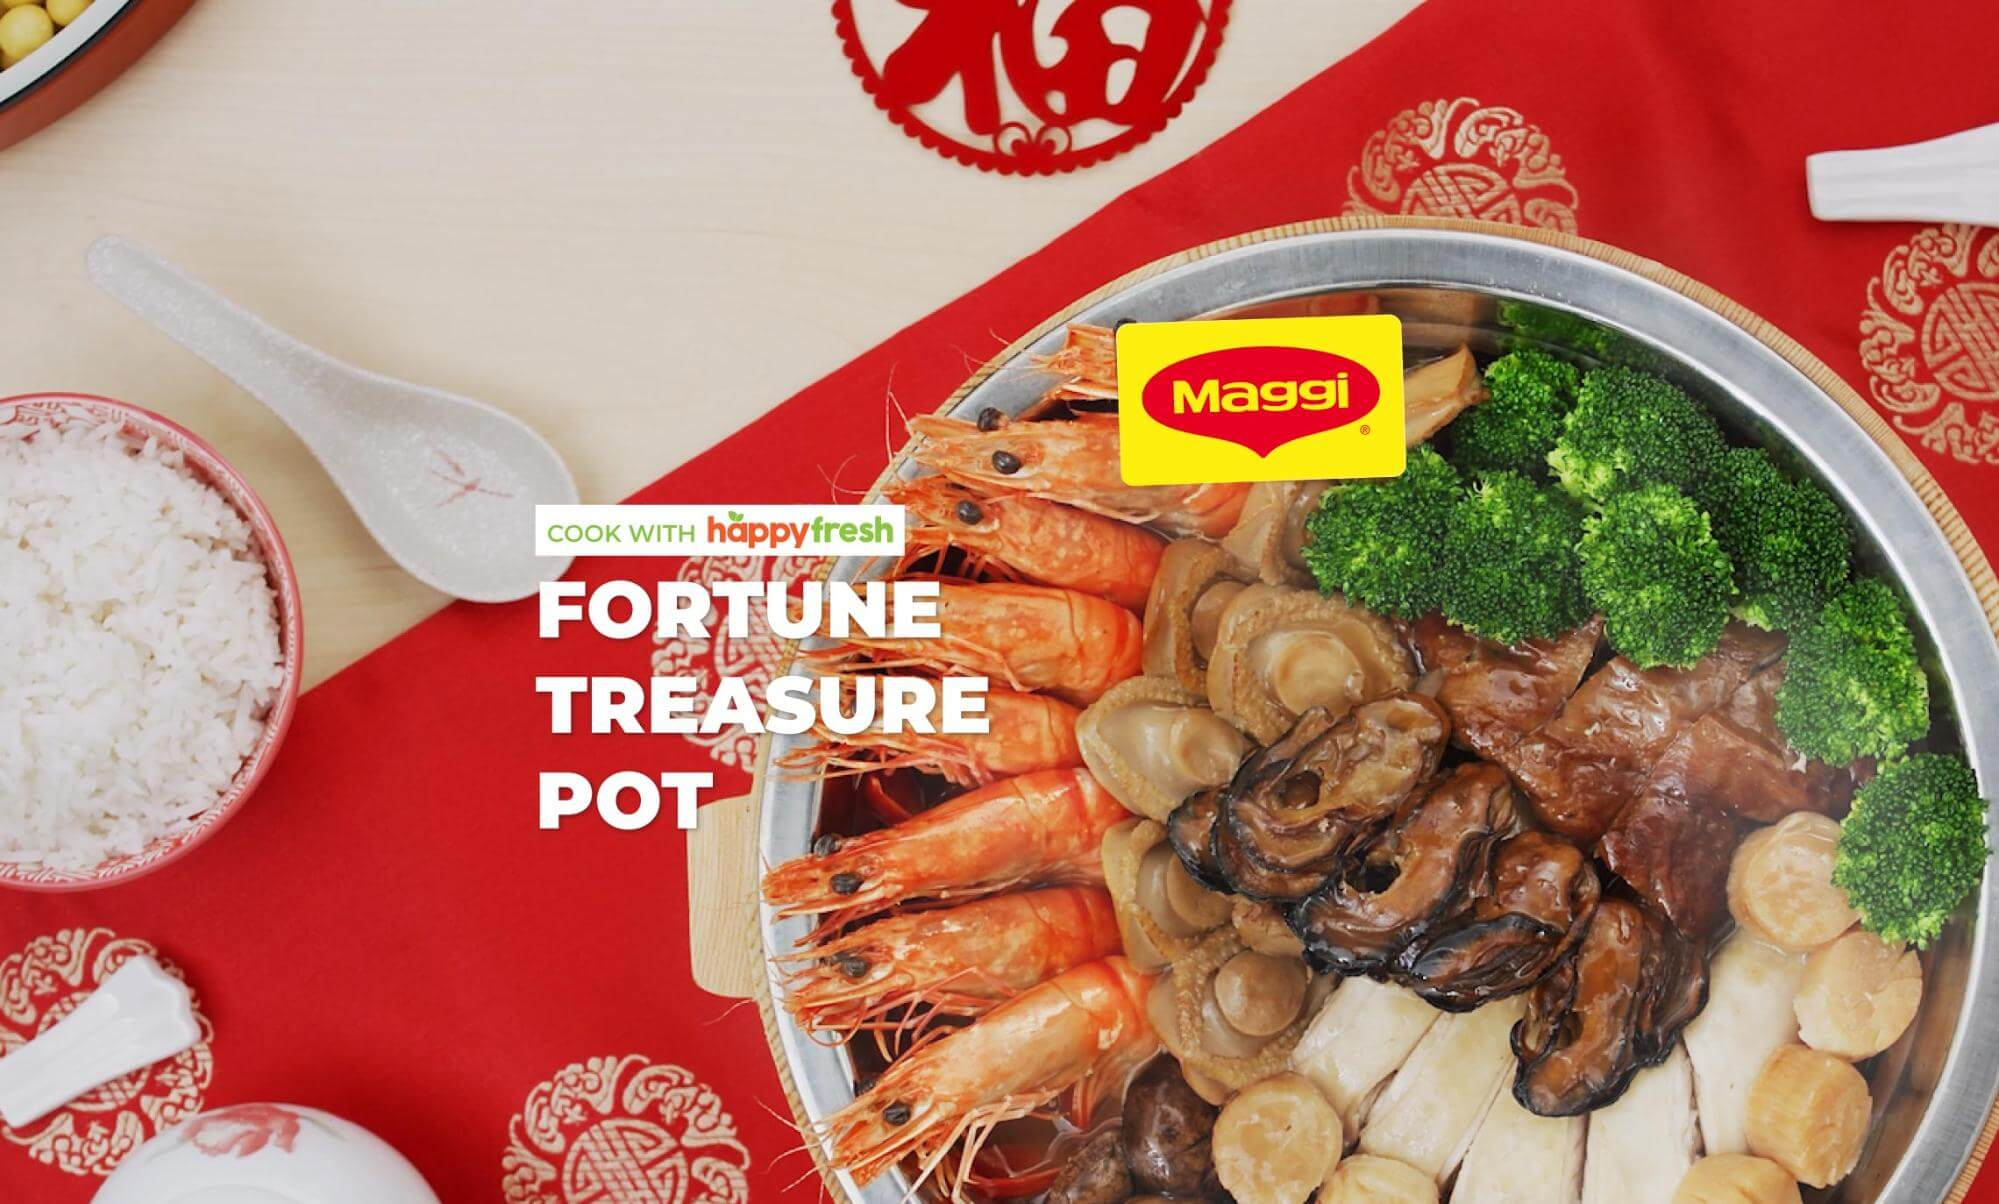 Maggi Poon Choi (Fortune Treasure Pot) for Chinese New Year 2021